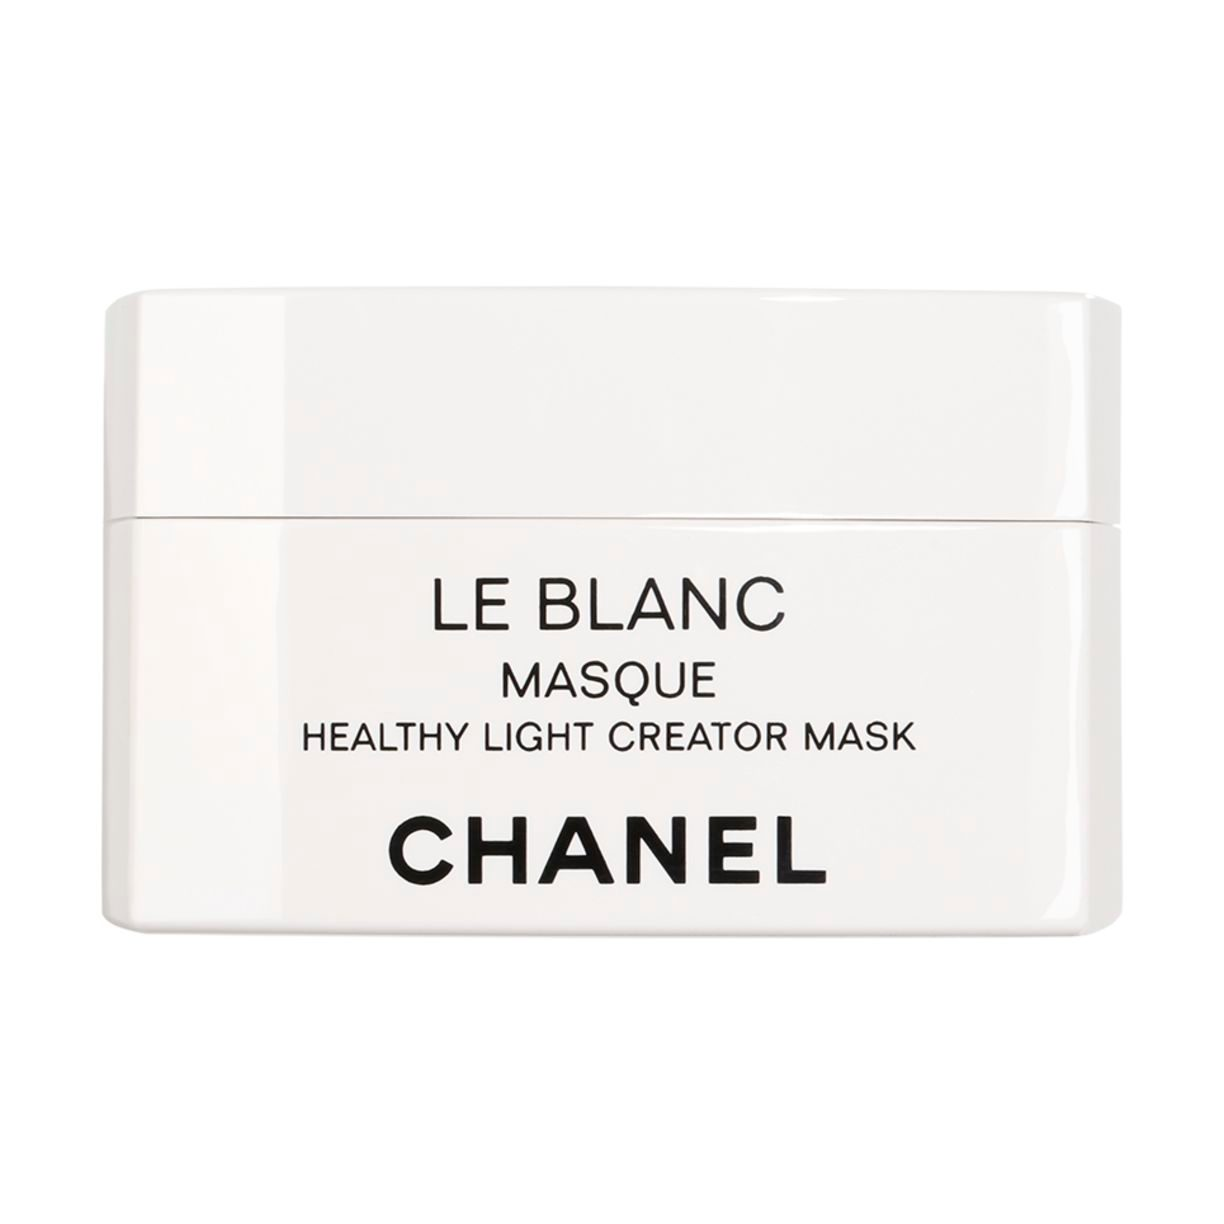 LE BLANC MASQUE HEALTHY LIGHT CREATOR MASK REVITALISEREND - VERHELDEREND - HERSTELLEND 50g